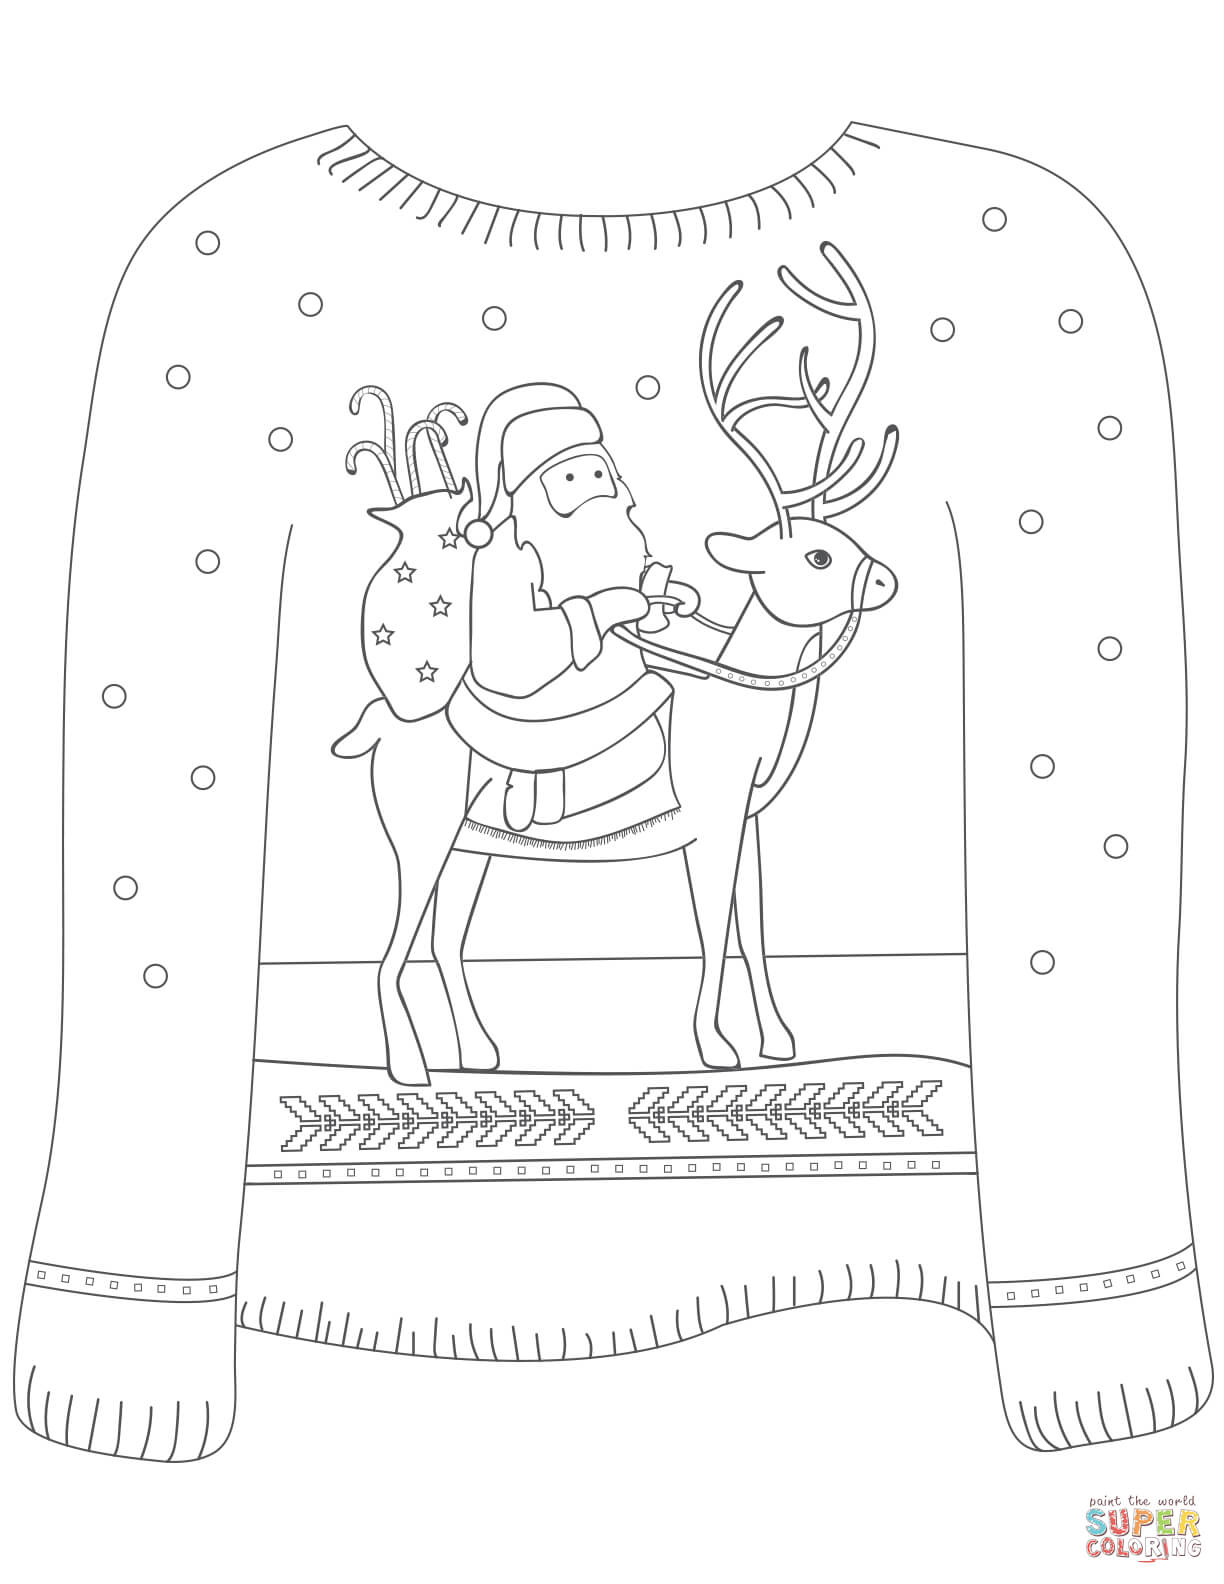 sweater coloring page ugly sweater cardigan coloring page coloring pages coloring sweater page